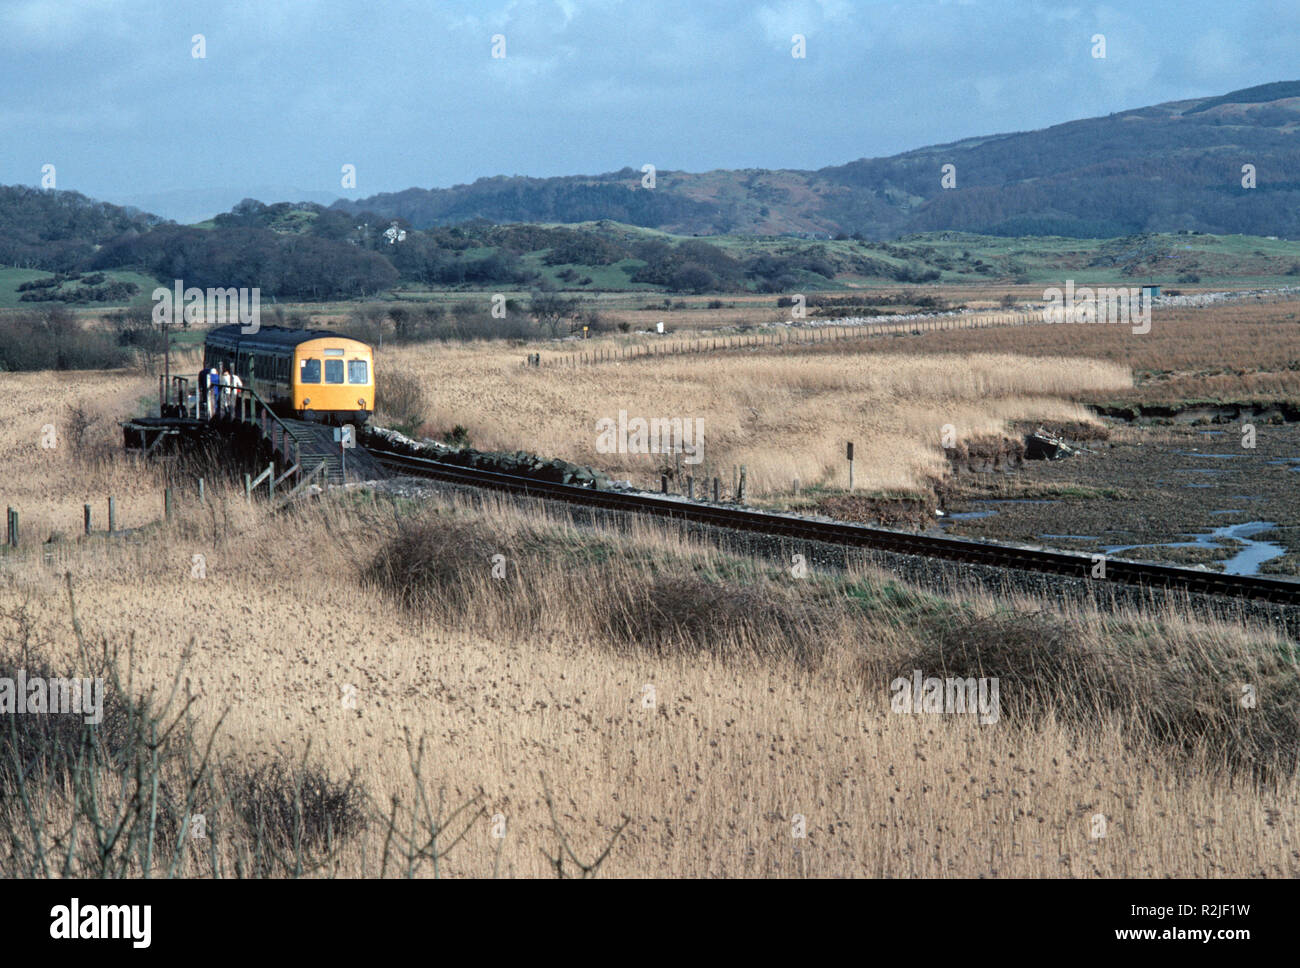 British Rail Diesel Multiple Unit, DMU, train on the River Dovey estuary marshlands, on the Dovey junction to Pwllheli Cambrian Coast railway line, Merionethshire County, Wales, Great Britain - Stock Image